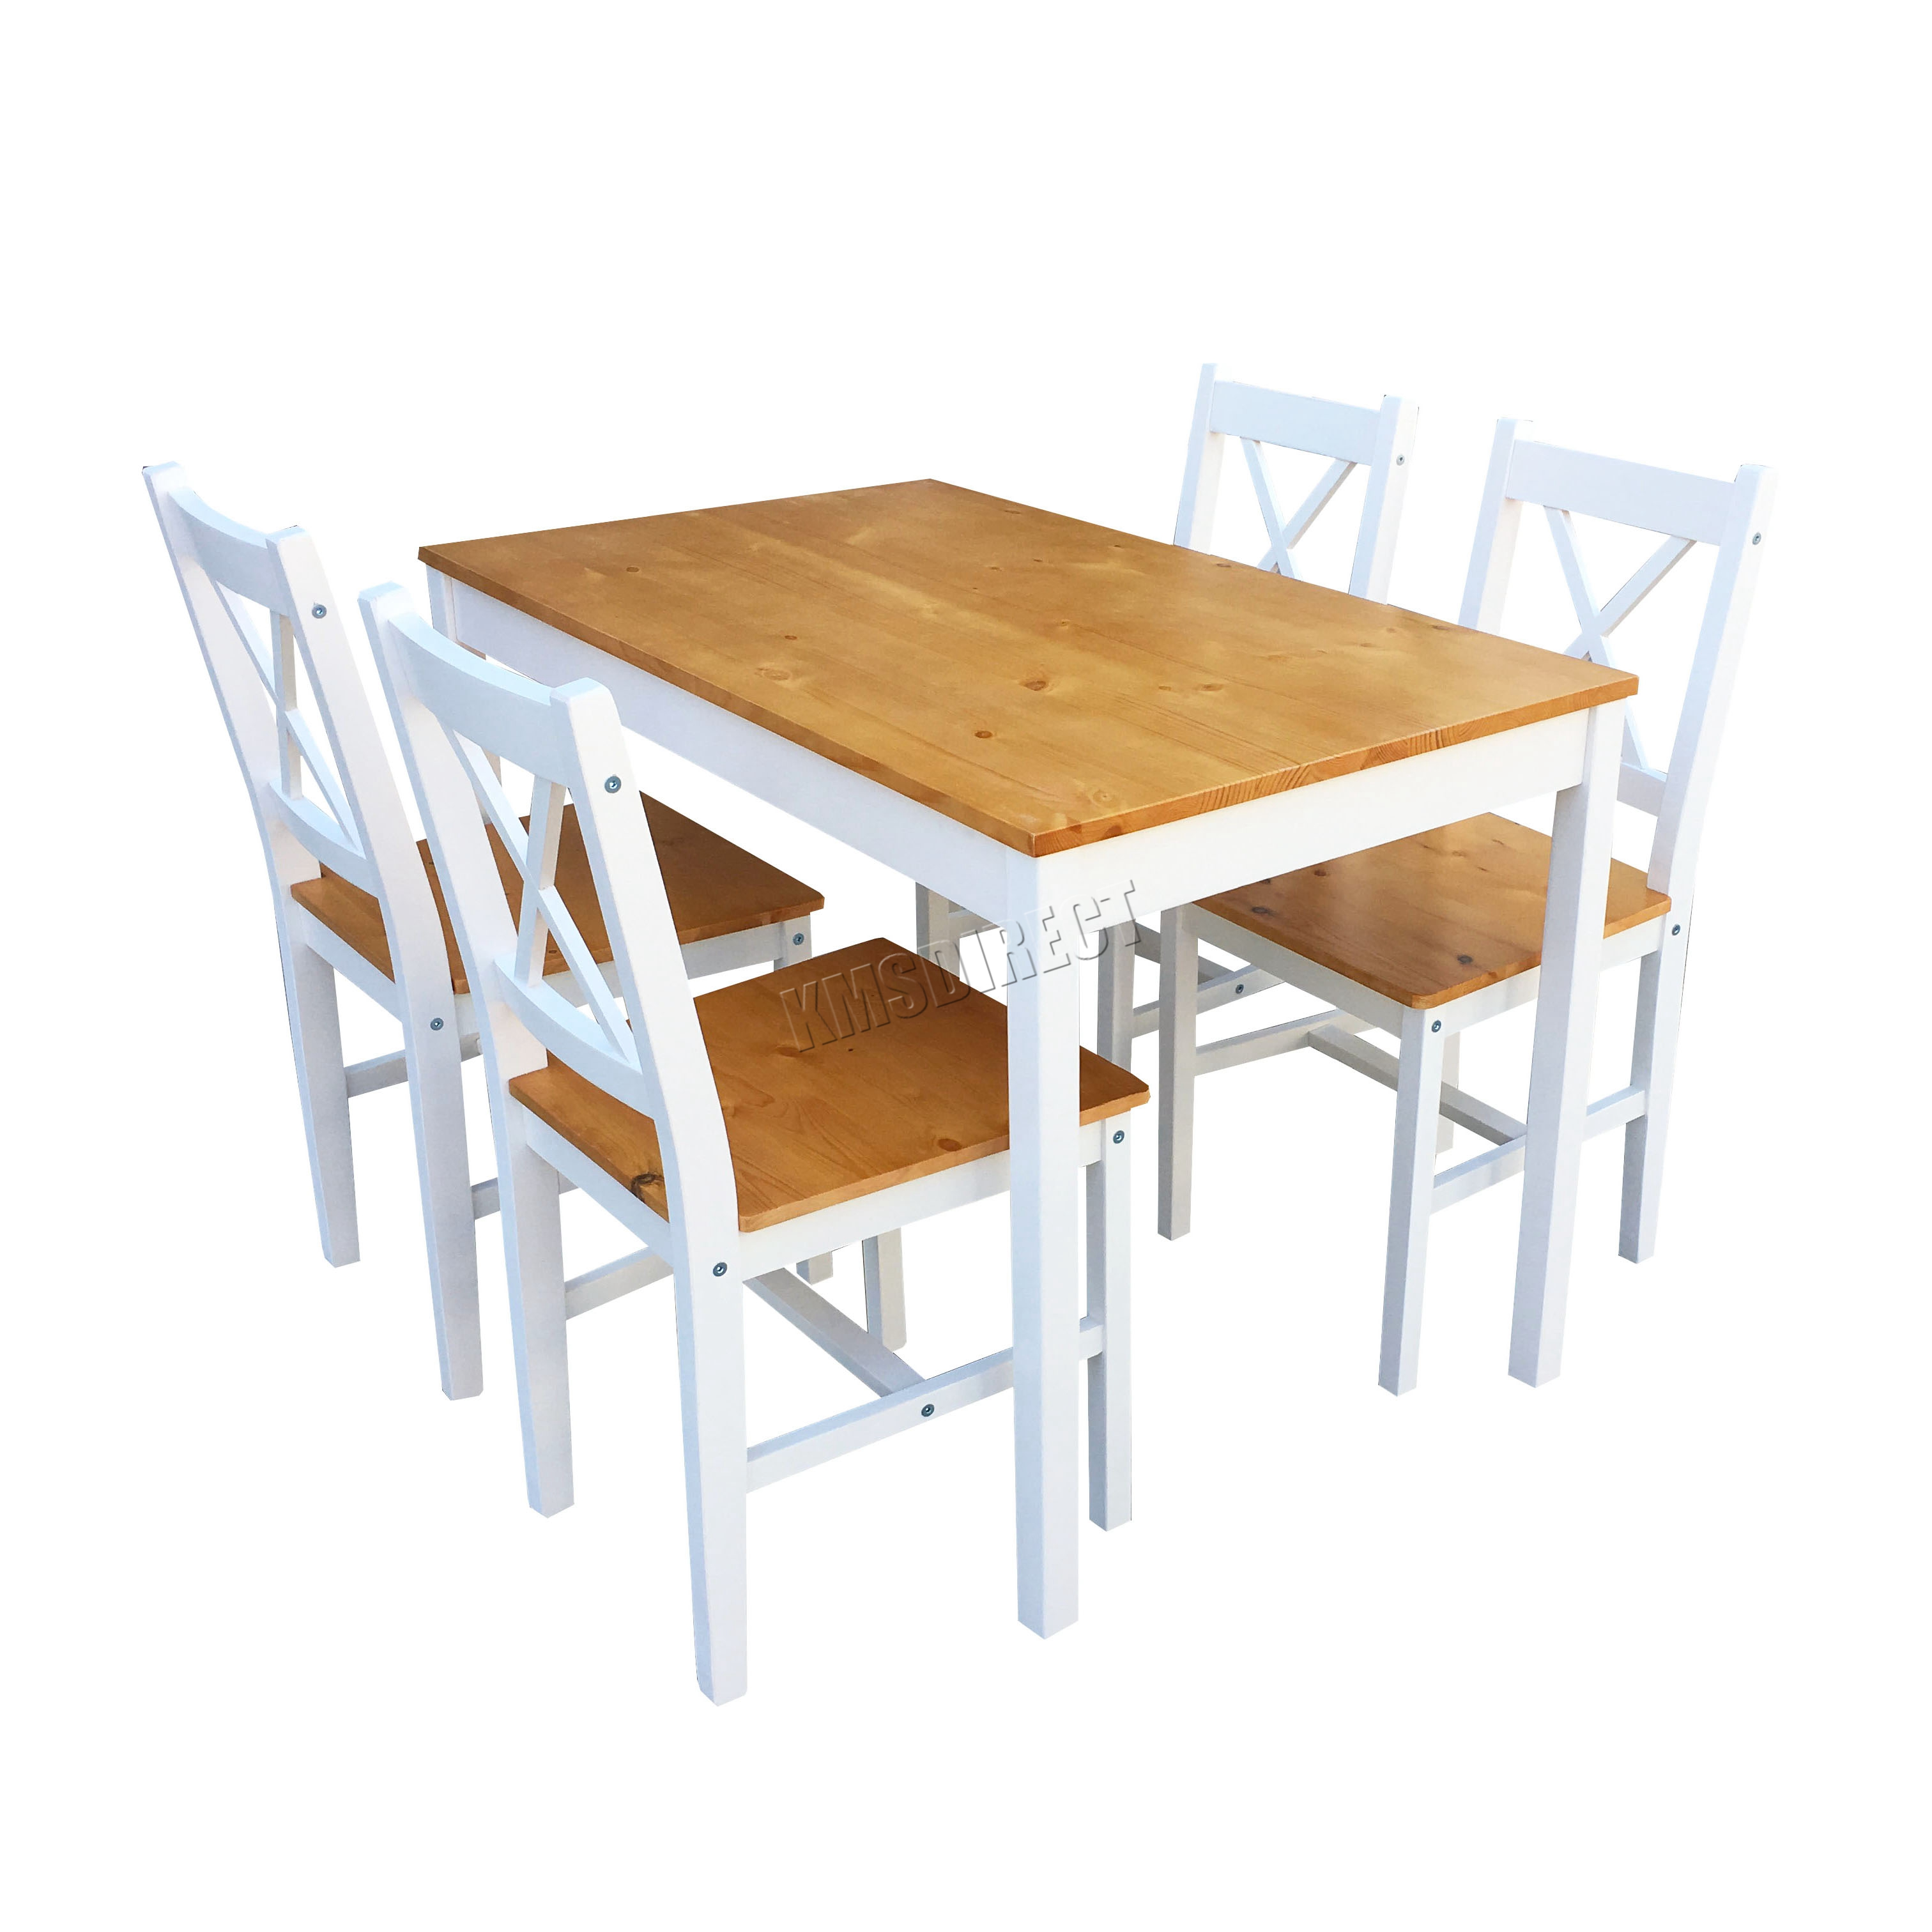 solid wood kitchen chairs swing chair abu dhabi westwood quality wooden dining table and 4